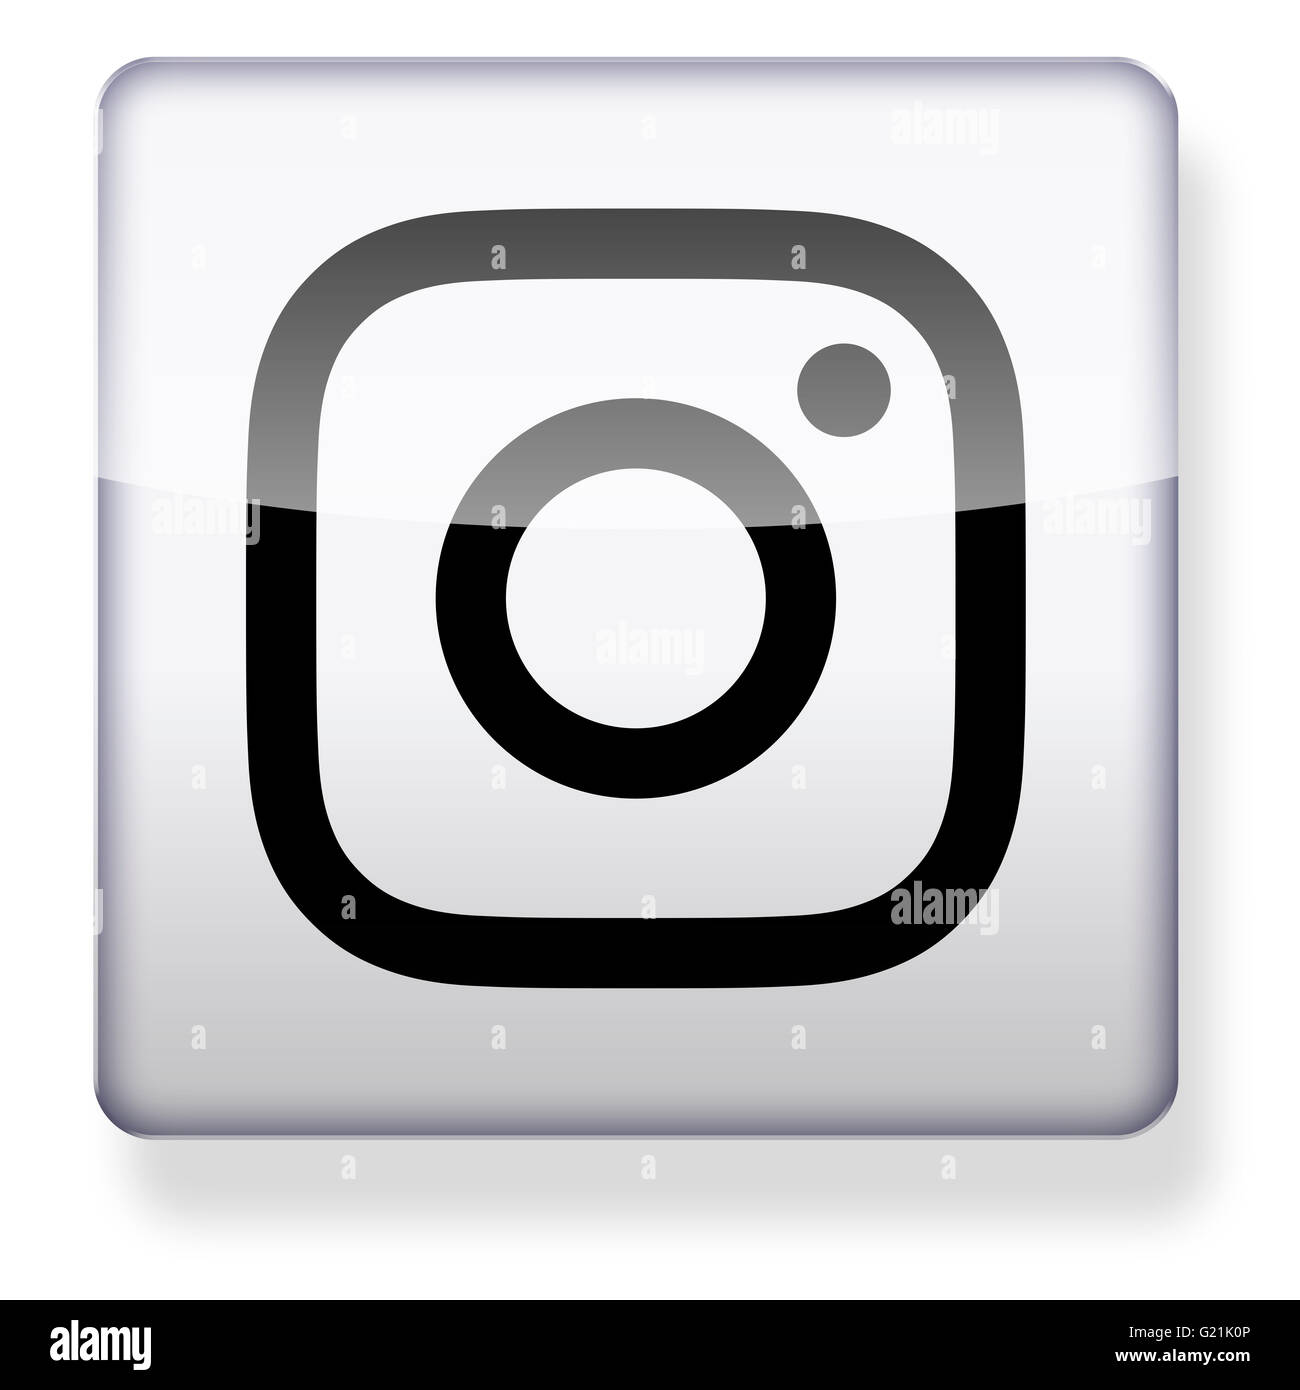 New Instagram logo as an app icon. Clipping path included. - Stock Image